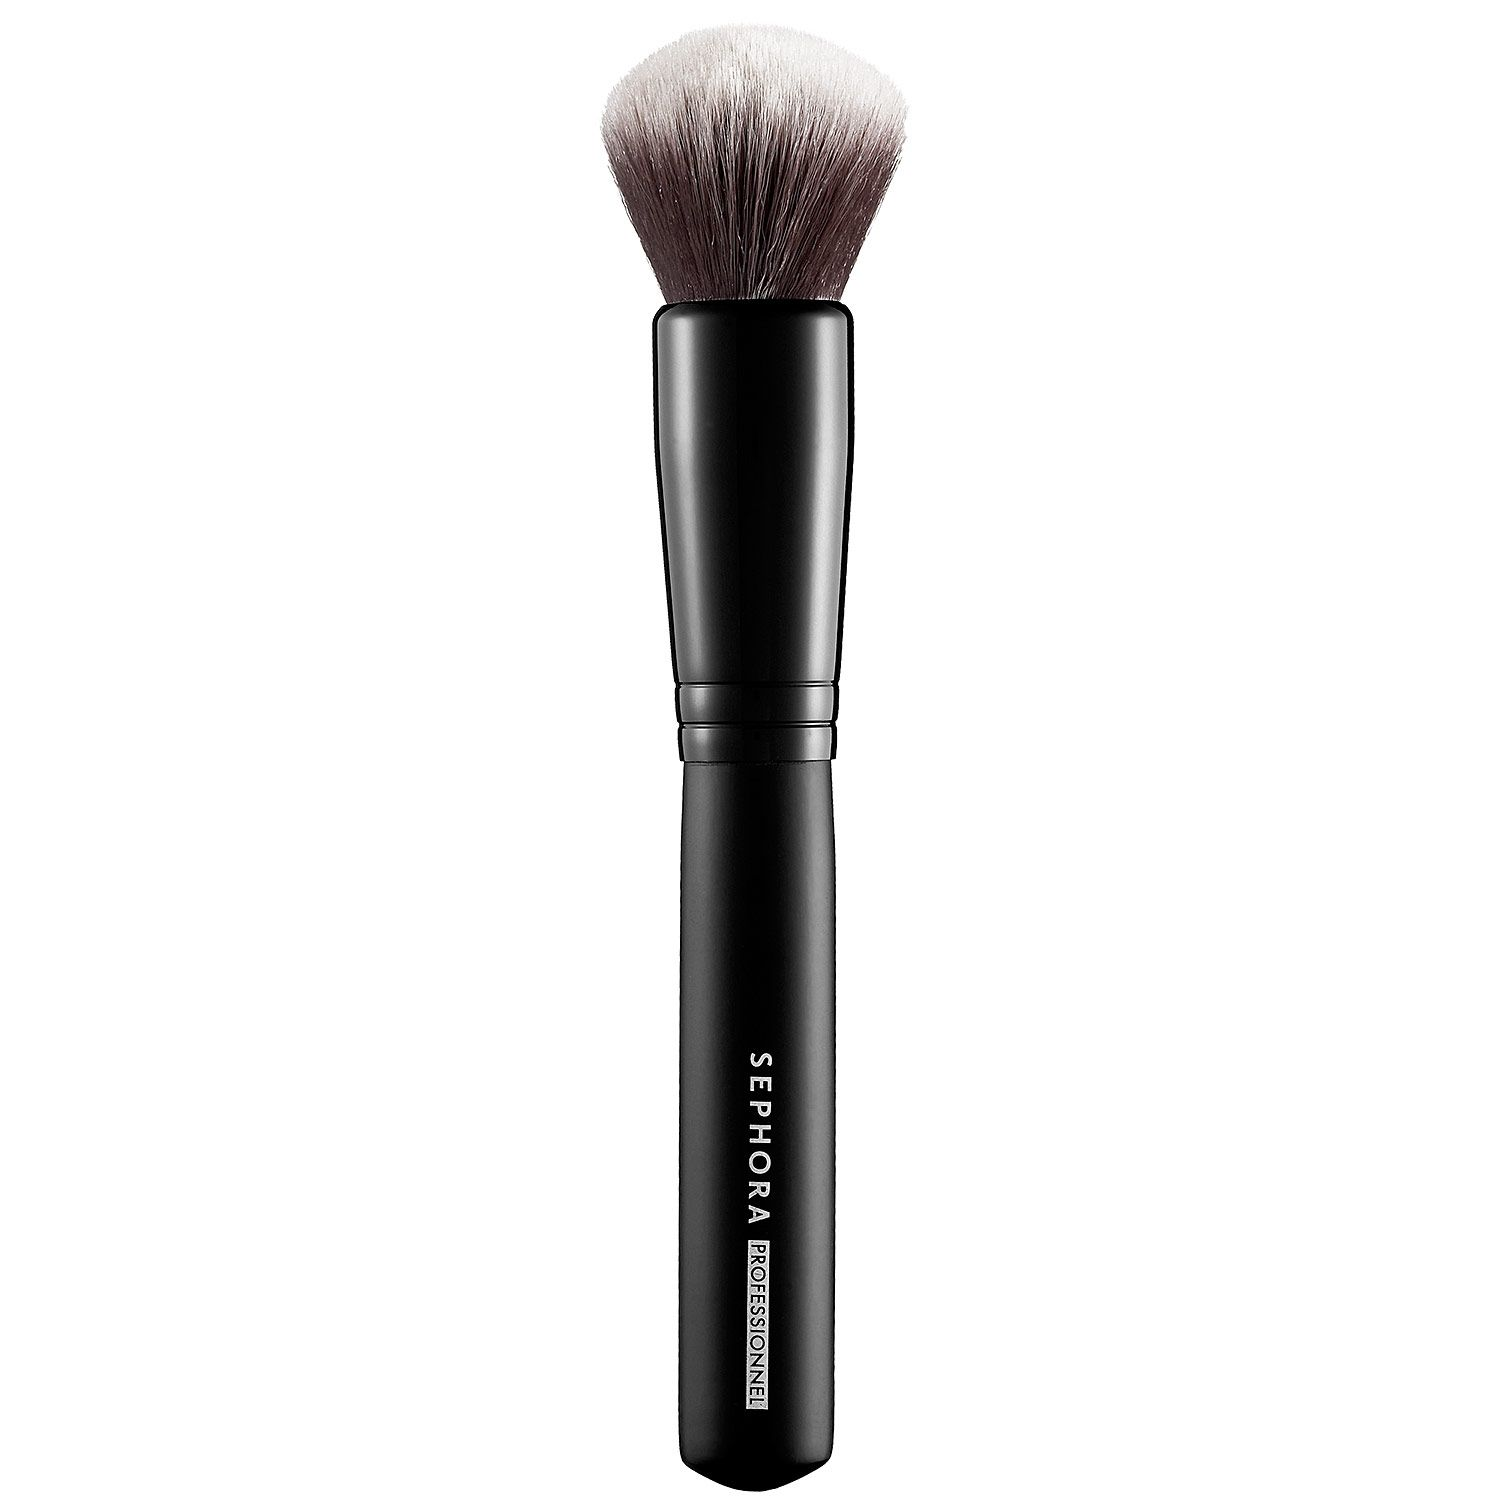 Classic Multitasker Brush - #45 by Sephora Collection #14